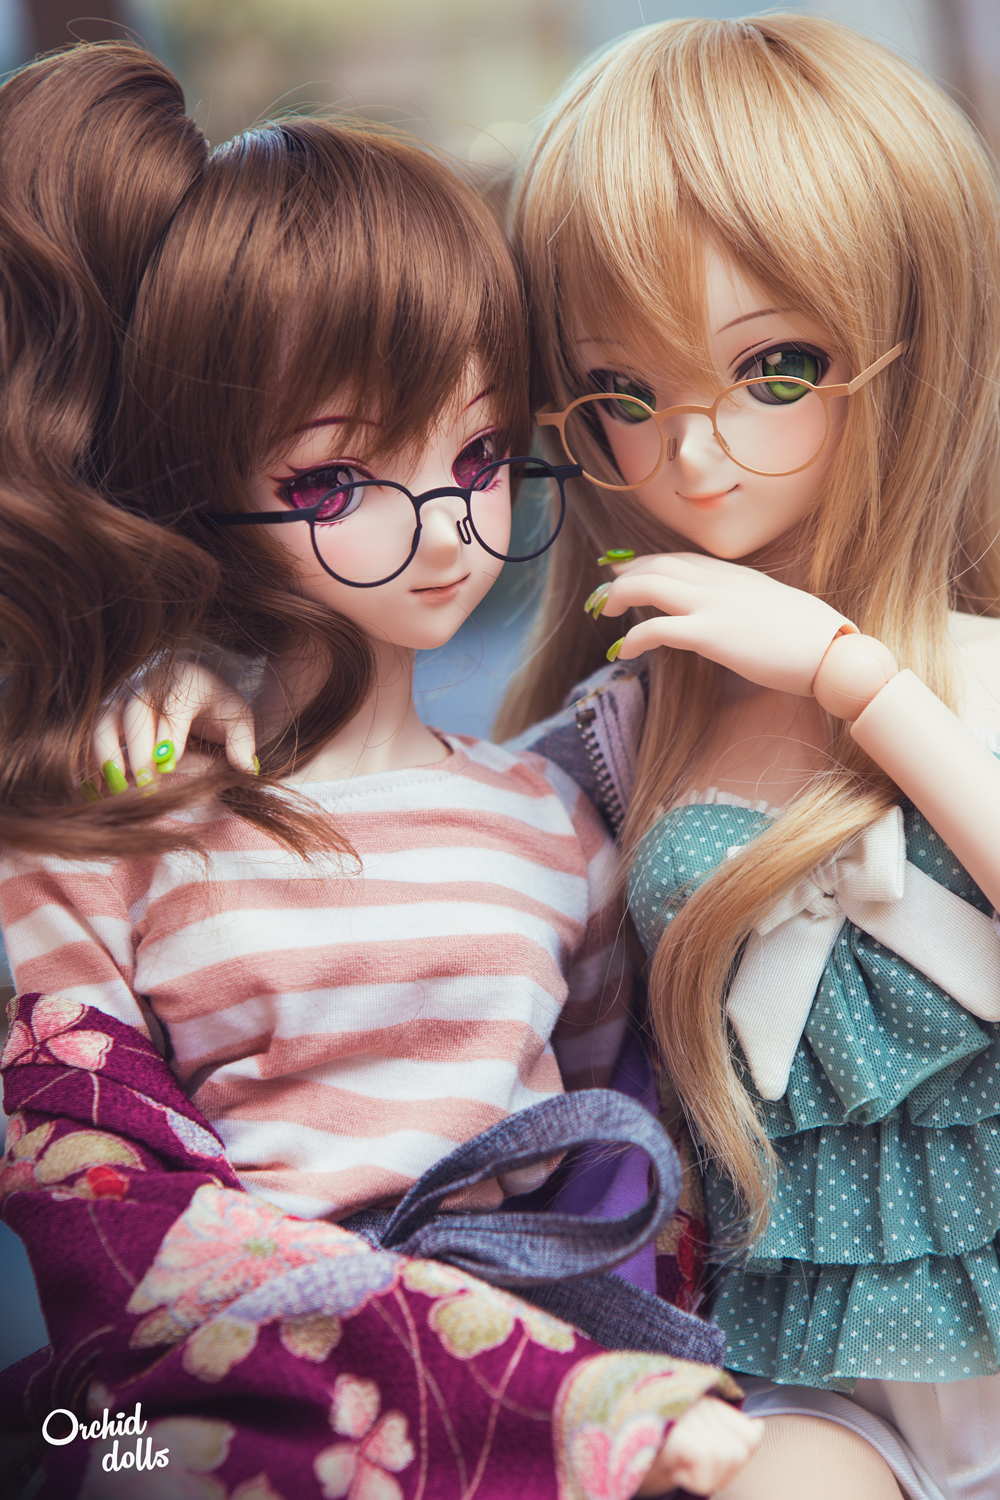 Dollfie Dream with glasses